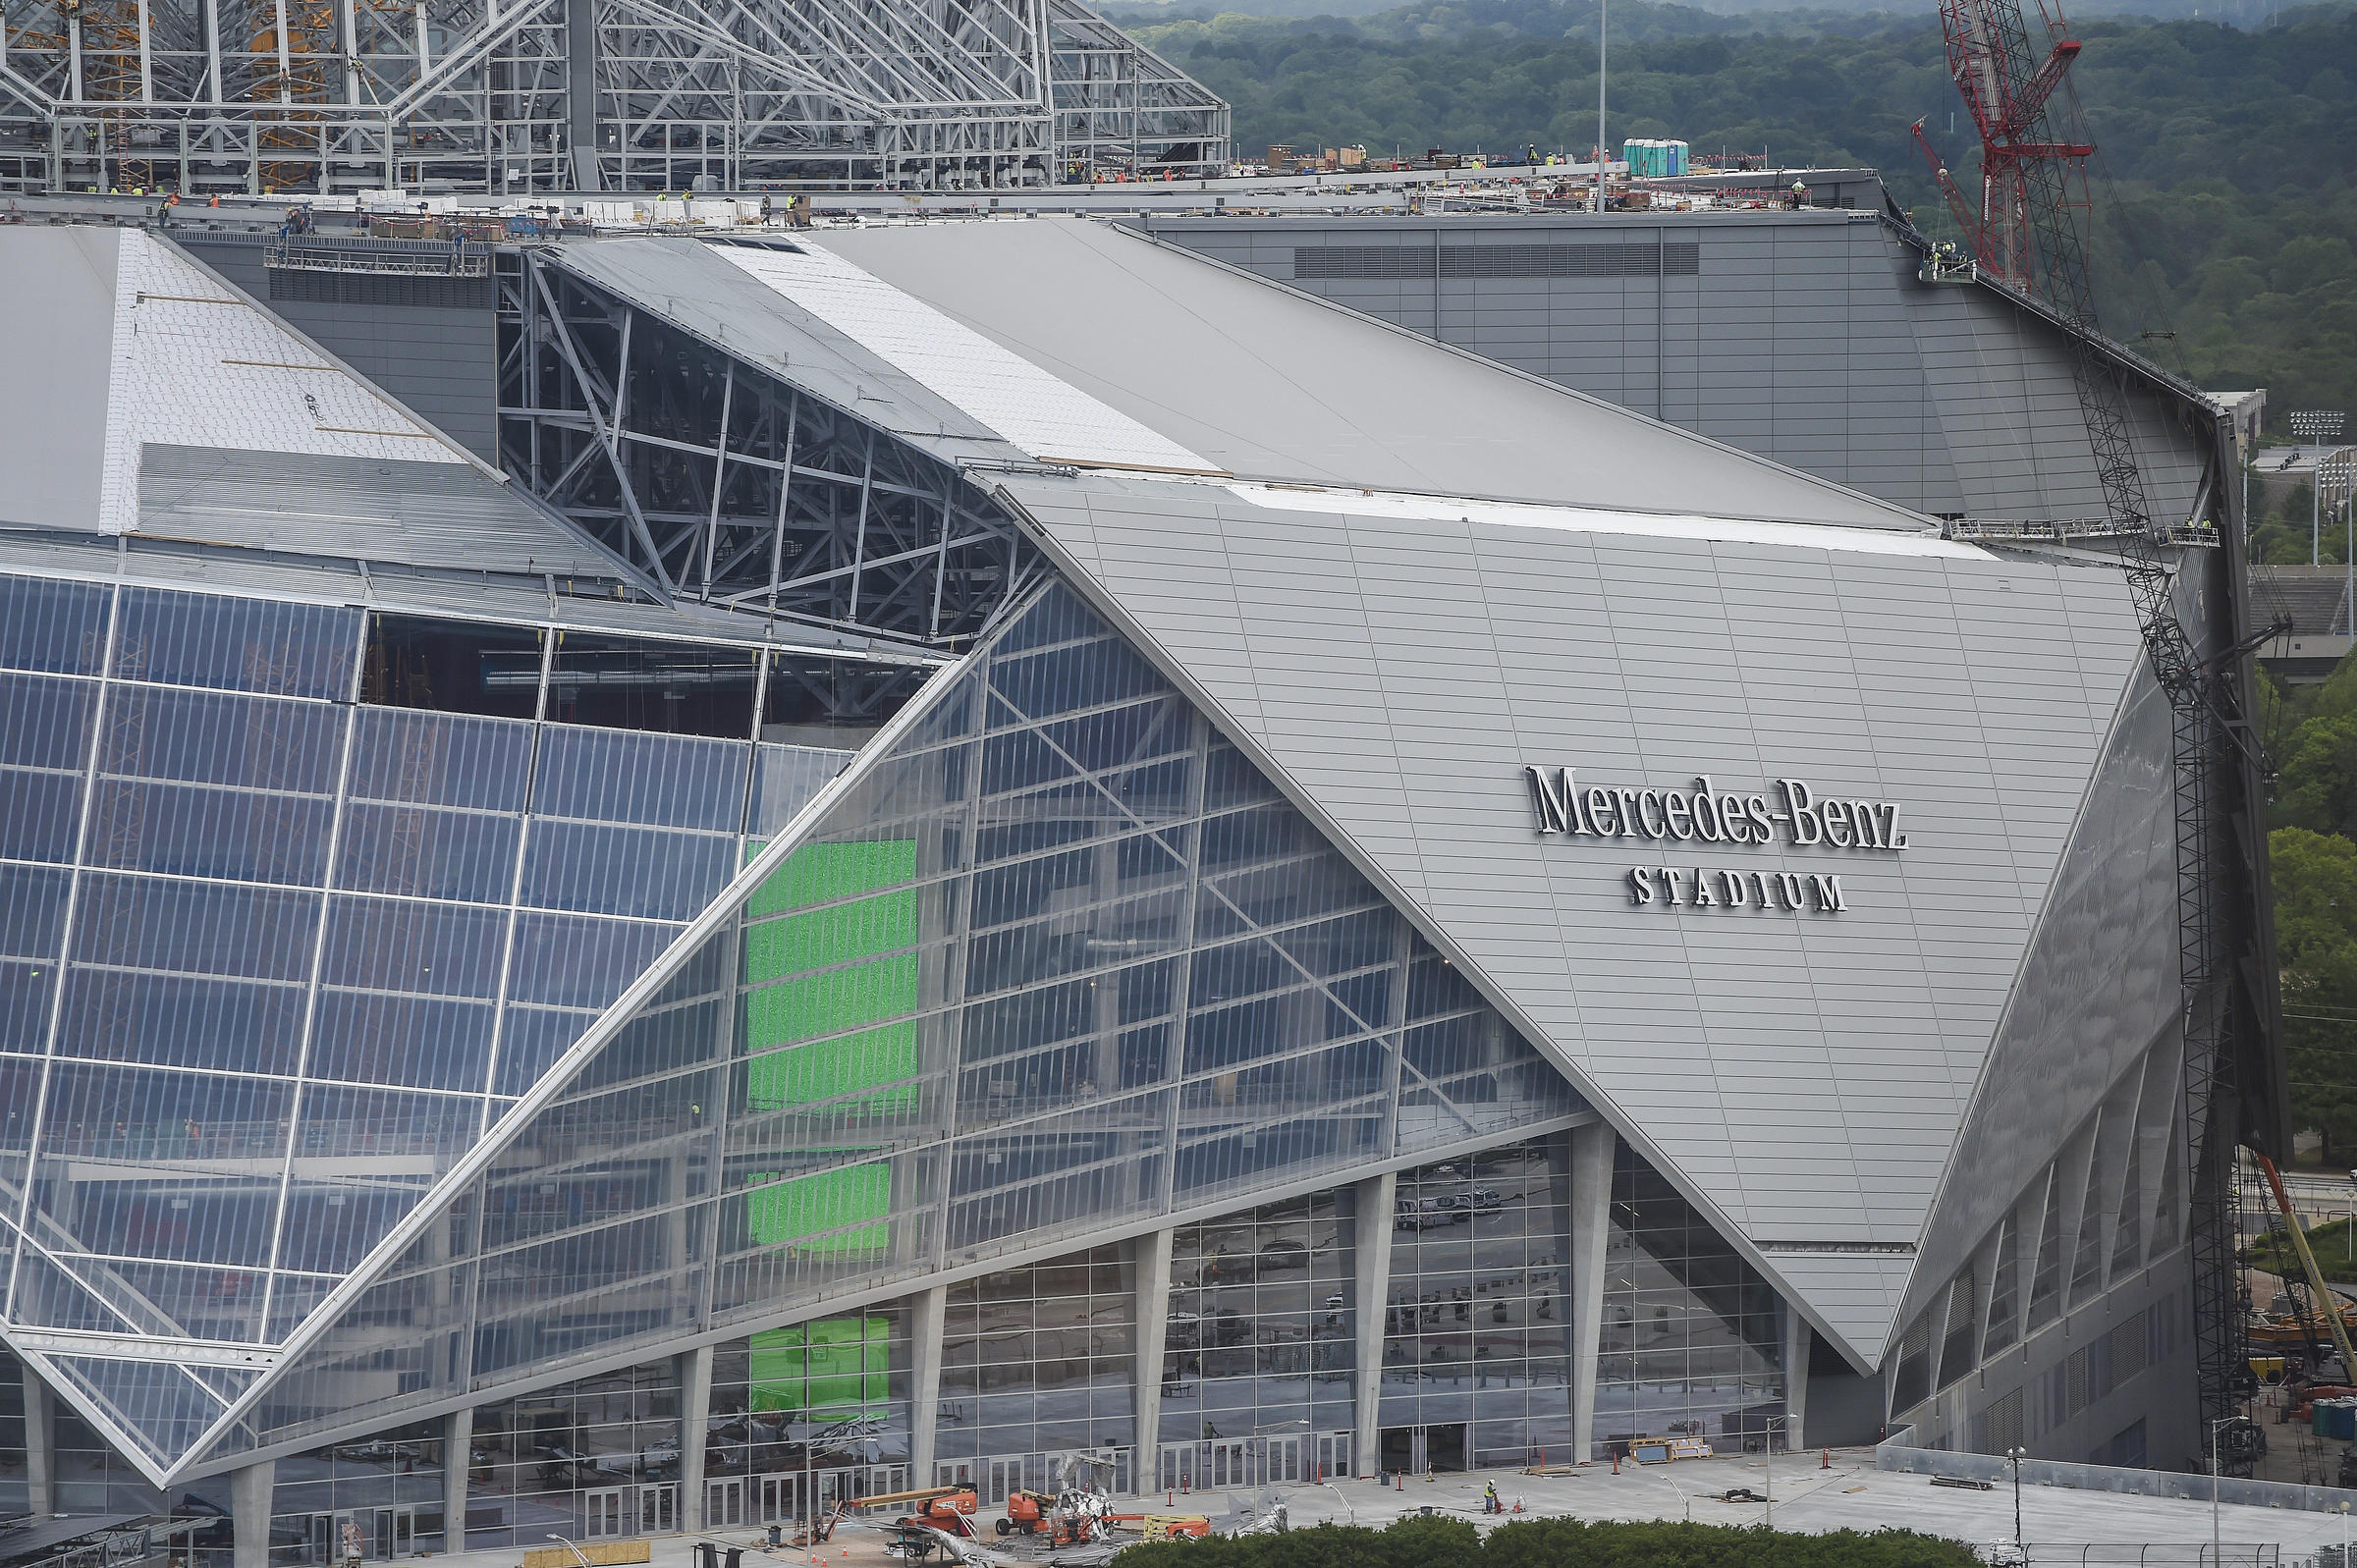 High hopes for high tech mercedes benz stadium despite for Hotels near mercedes benz stadium